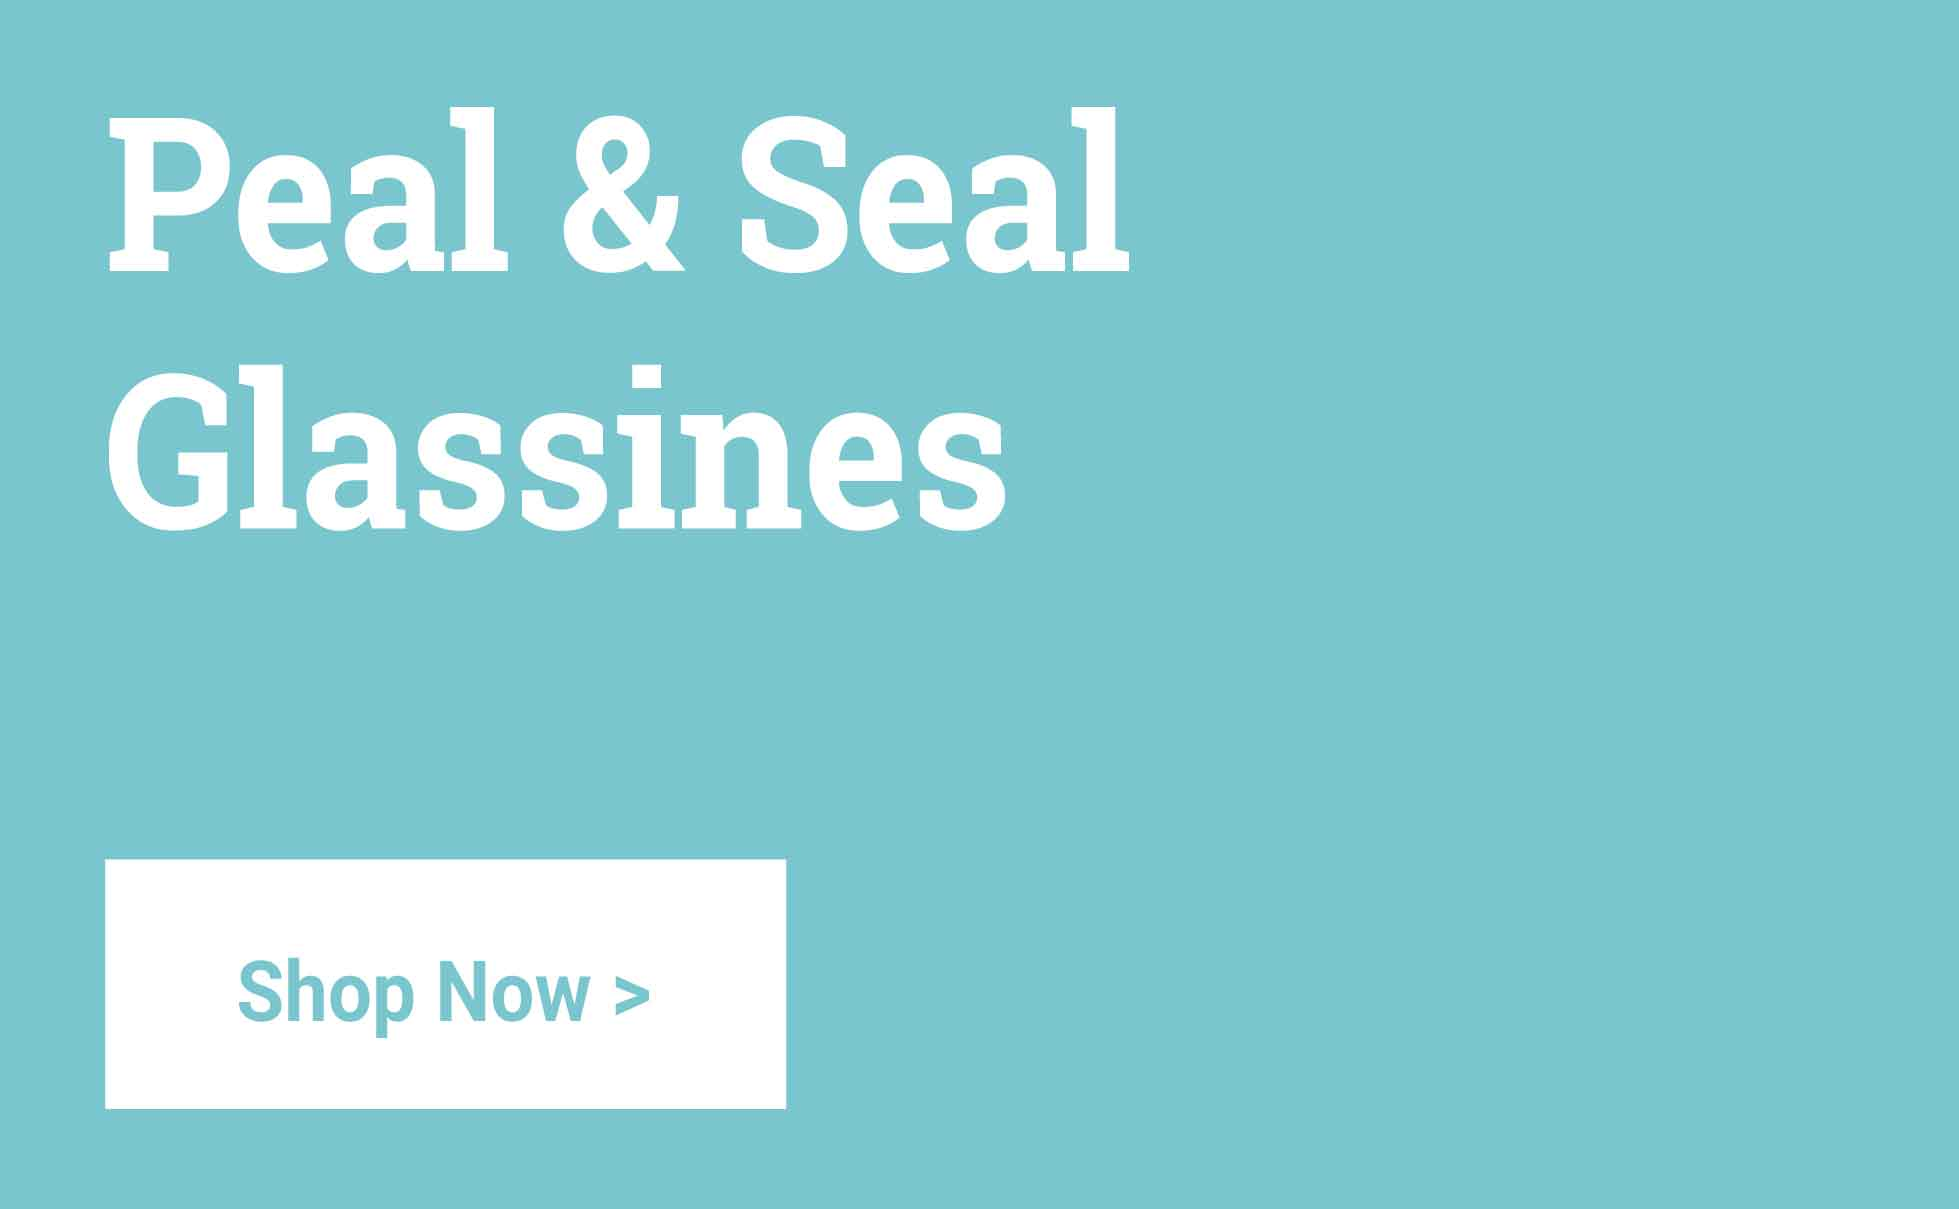 Peal & Seal glassines